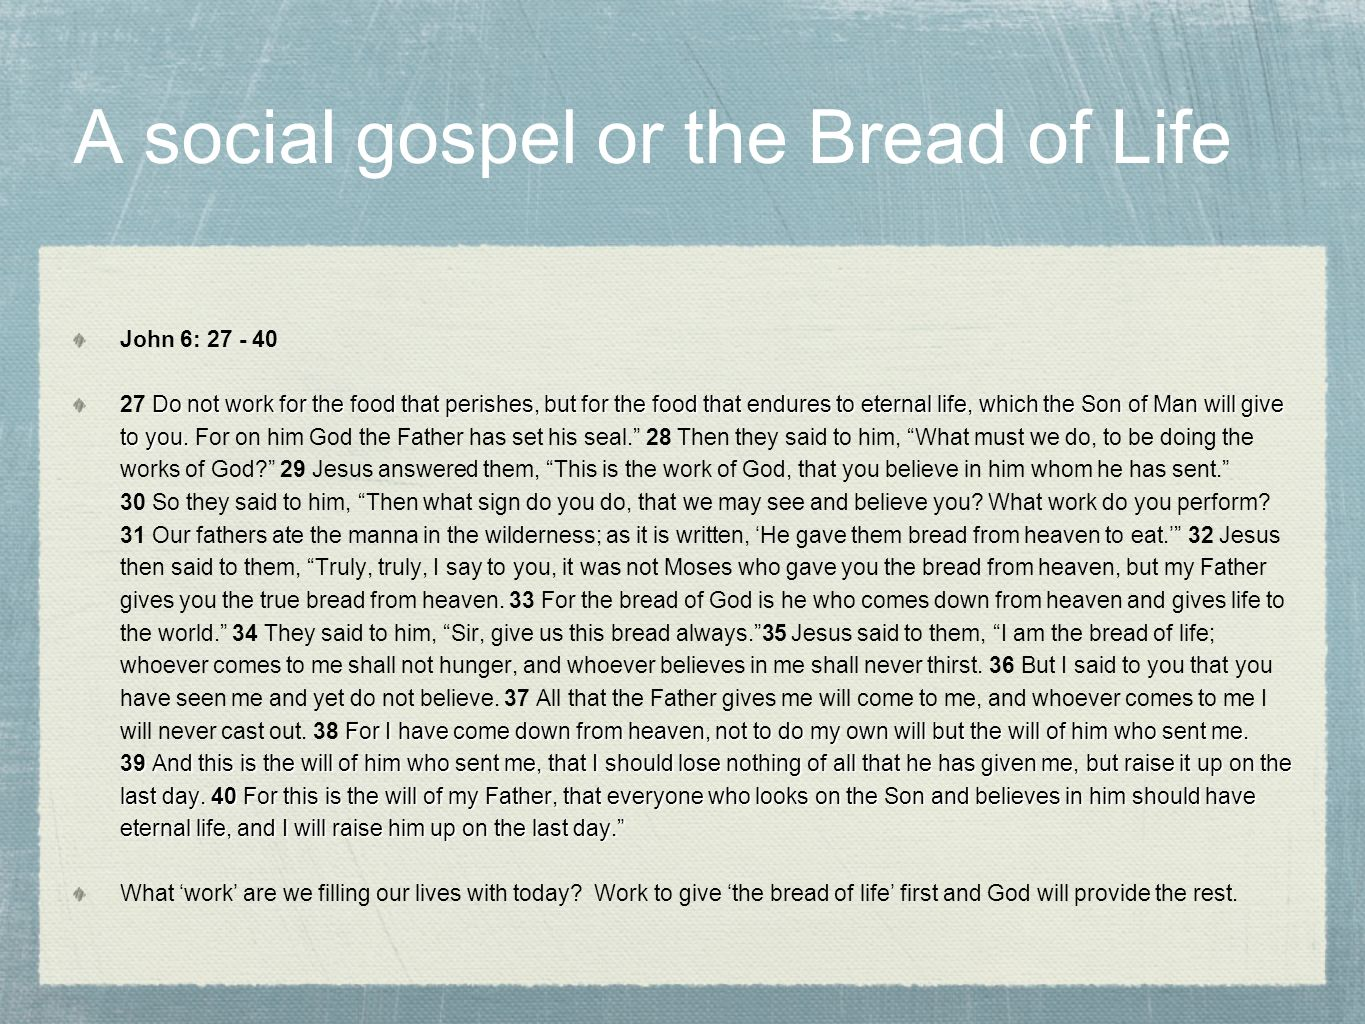 A social gospel or the Bread of Life